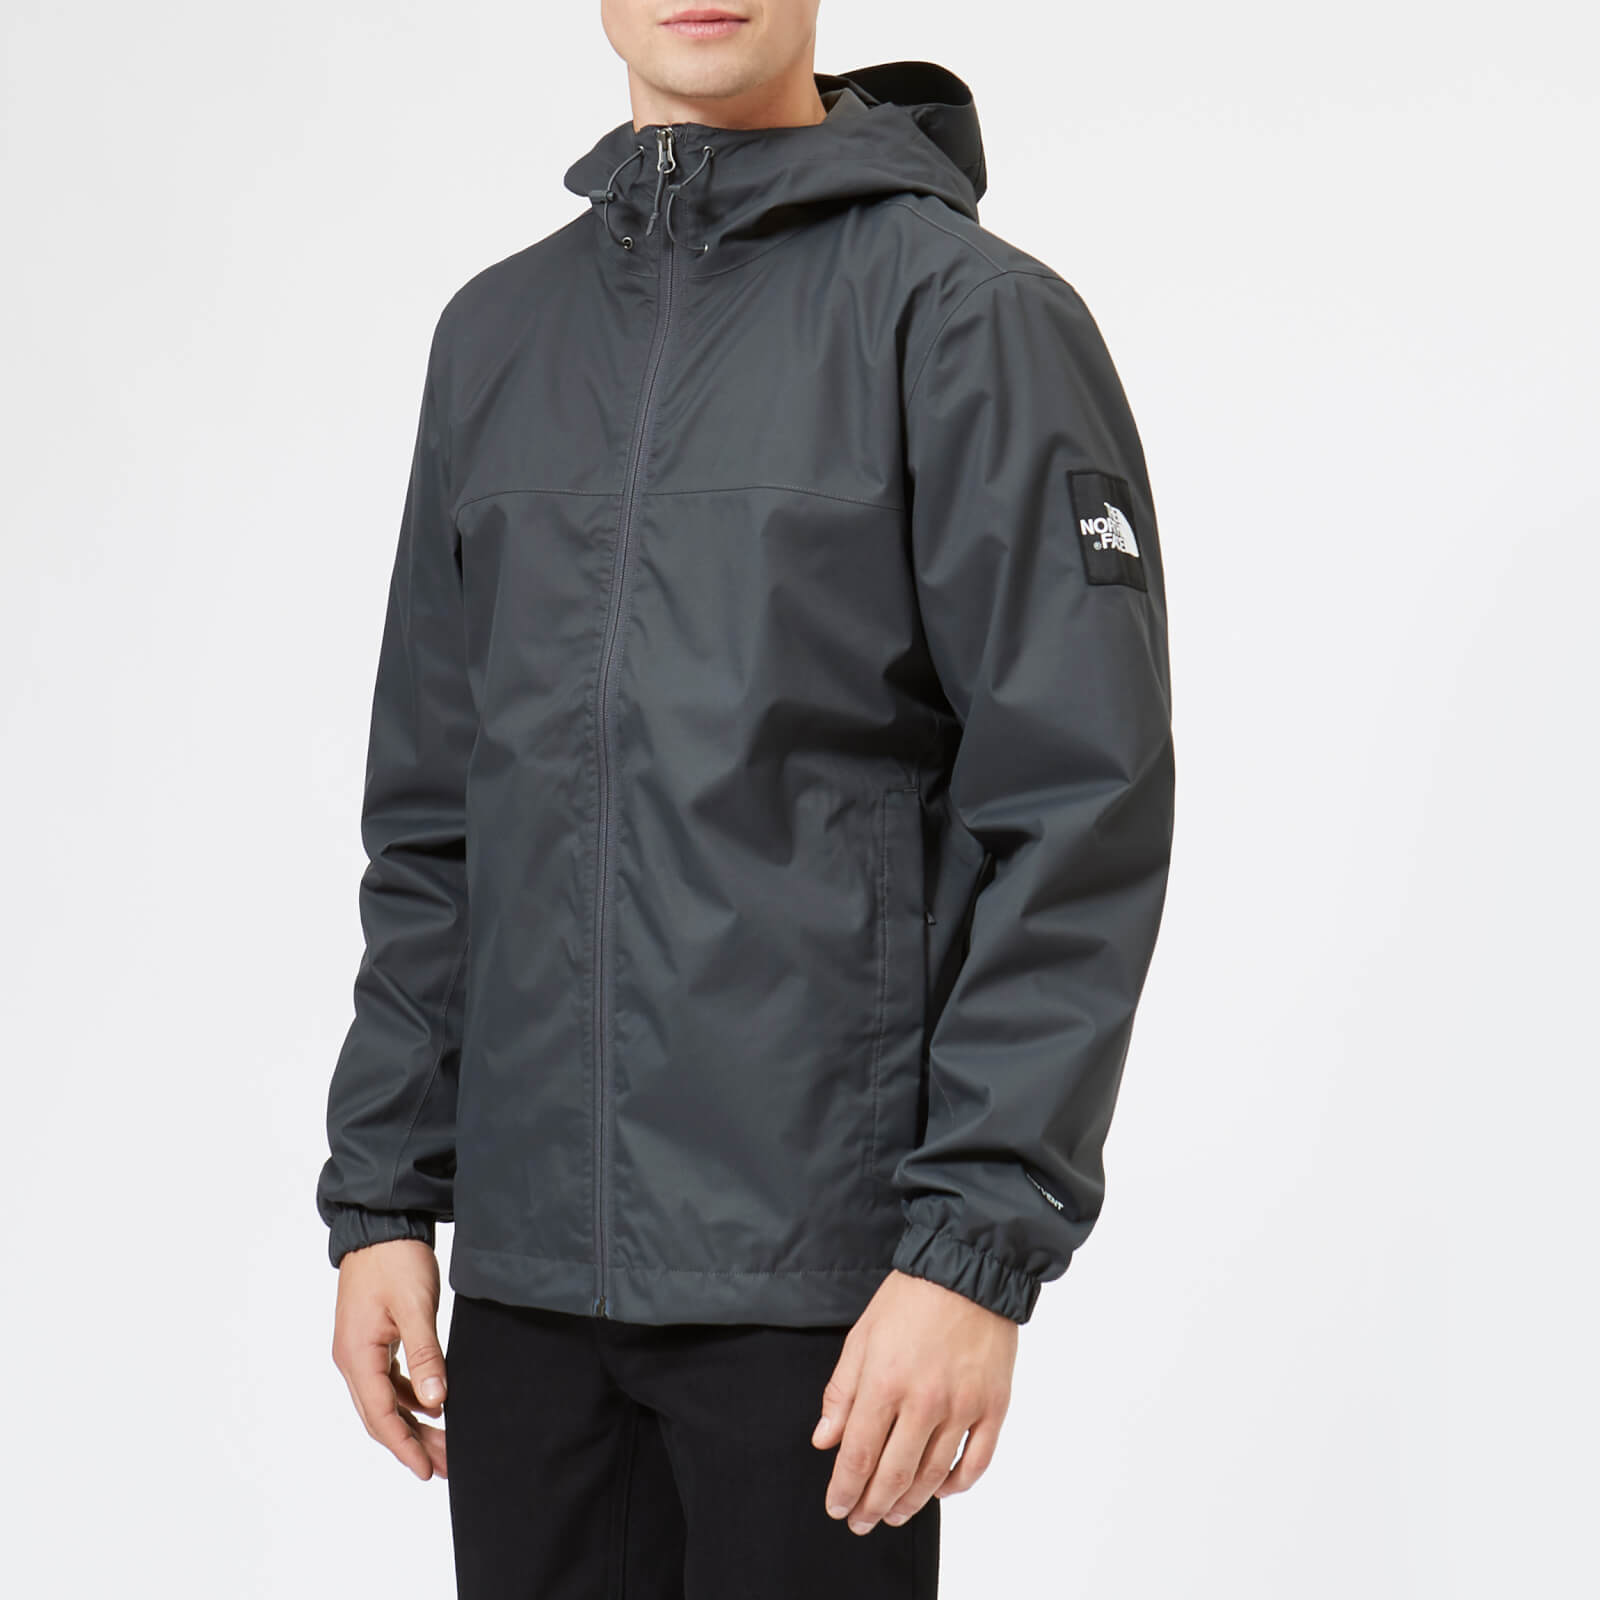 b8e3ad498d2b The North Face Men s Mountain Q Jacket - Asphalt Grey - Free UK Delivery  over £50